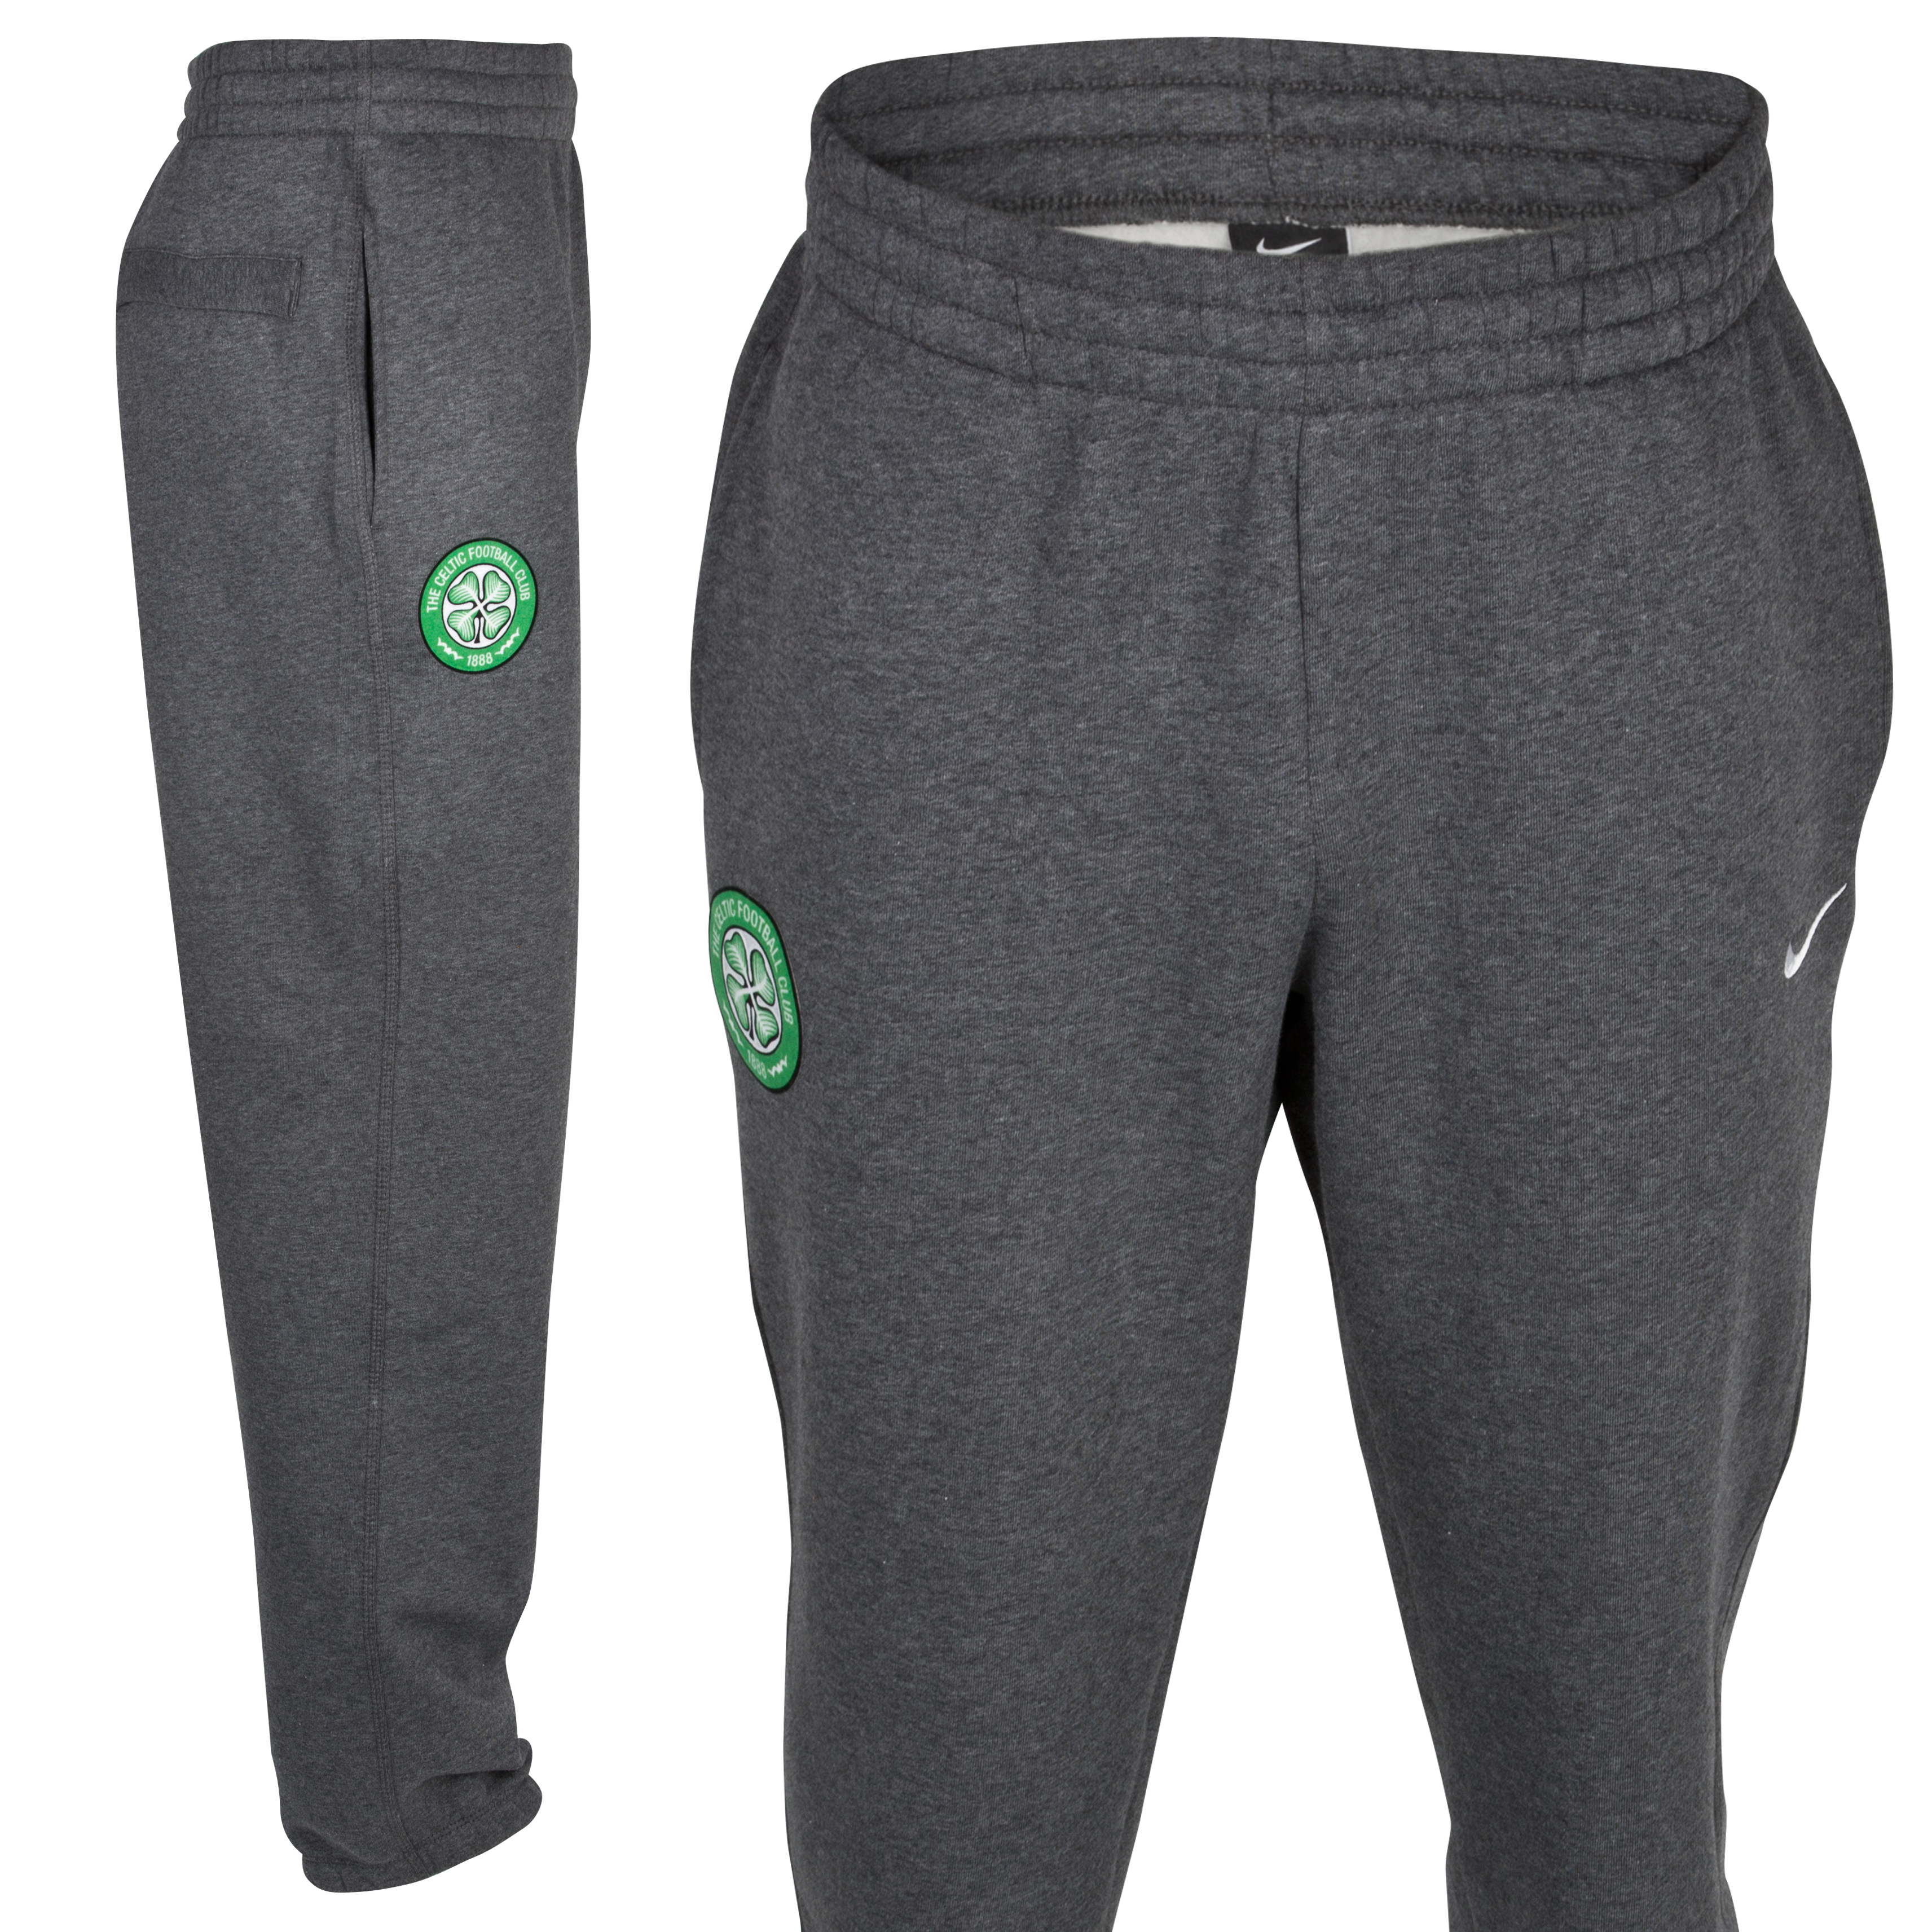 Celtic Classic Cuffed Pant - Charcoal Heather/White